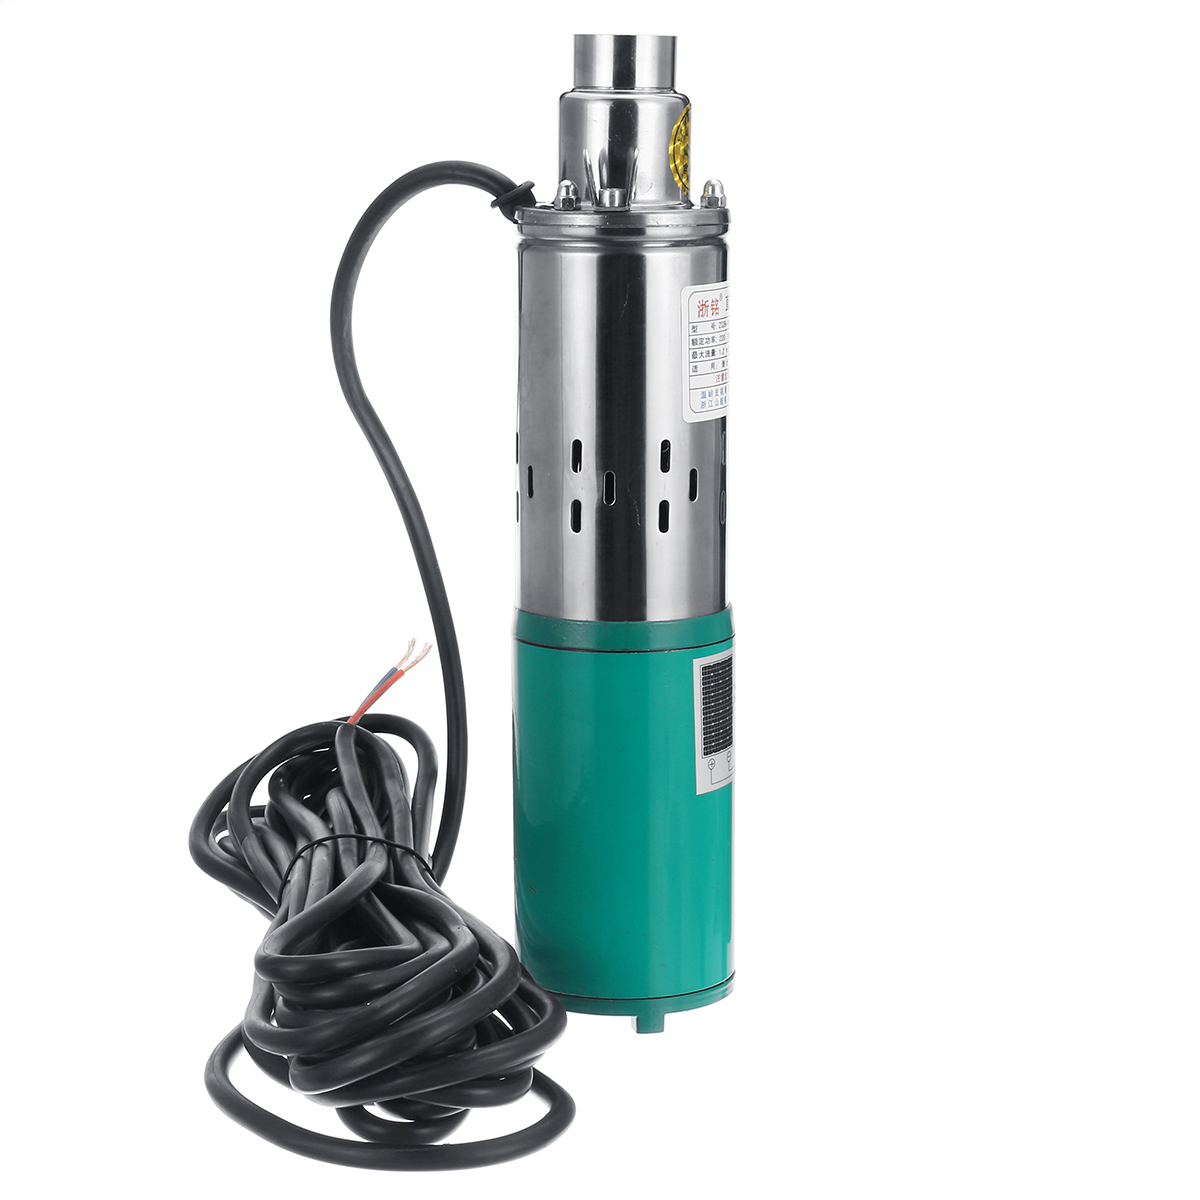 DC 12V 1.2M³/H 220W Solar Powered Water Pump Submersible 30M Stainless Steel Deep Well Pump